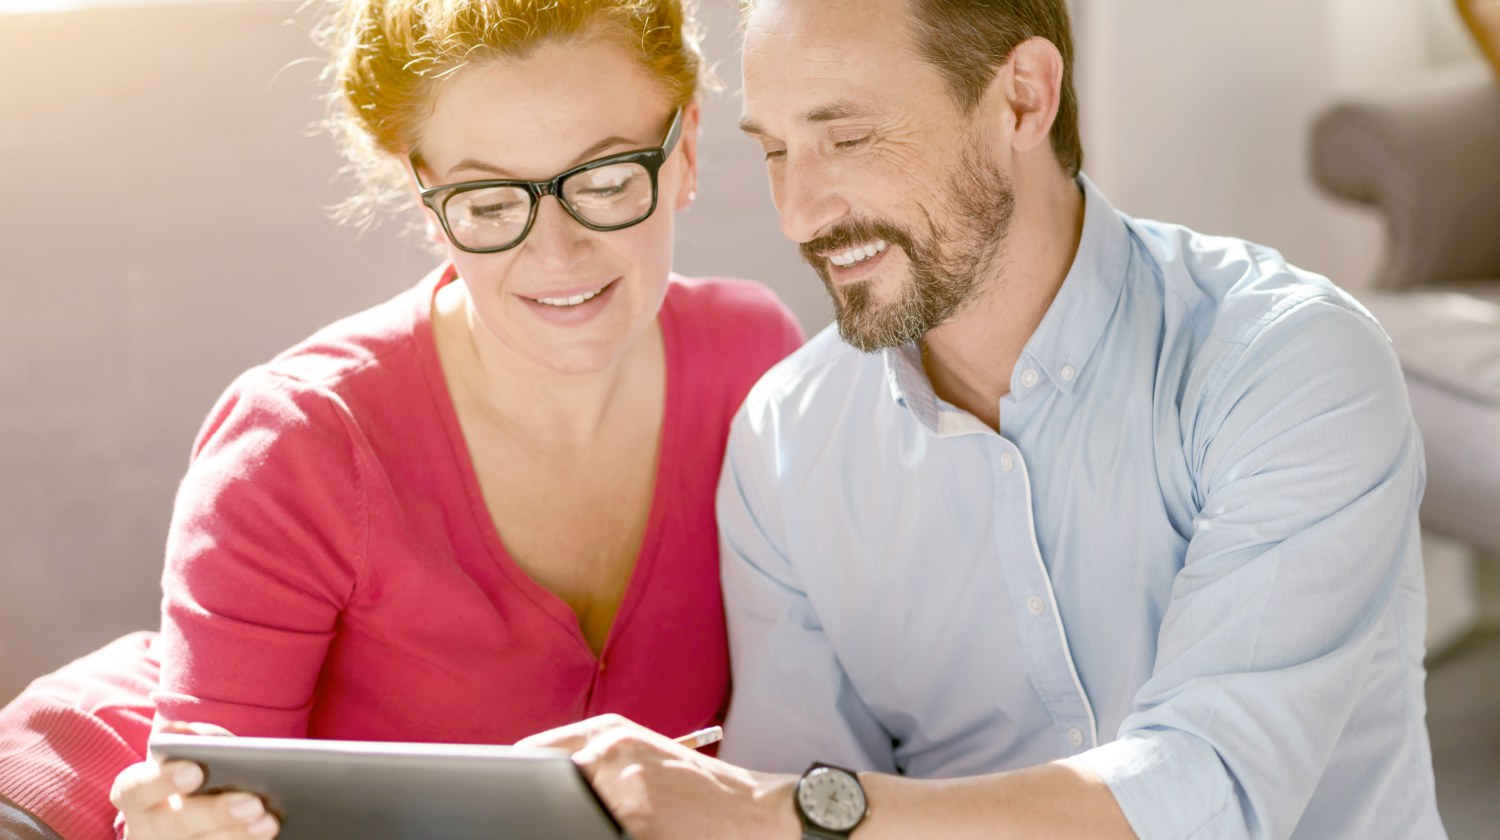 couple relaxing at home holding a tablet | What Are Traditional IRA Contribution Limits? | traditional IRA contribution limits | employer-sponsored retirement plan | Featured